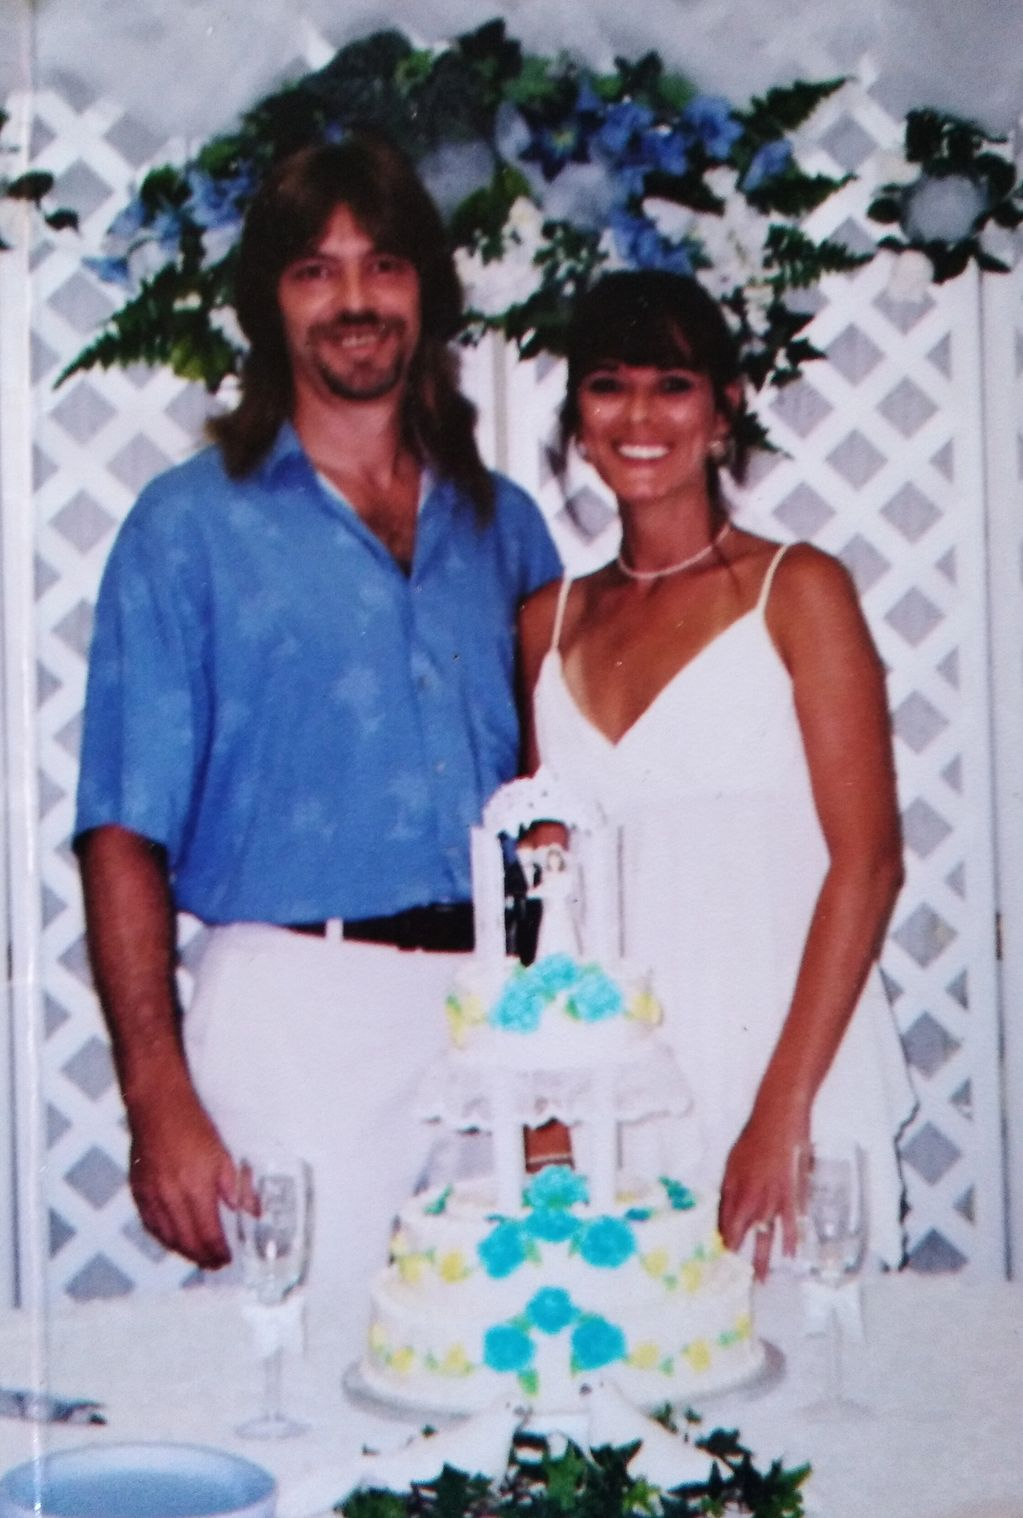 ME AND BILLS WEDDING PICTURE IN PALATKA, FLORIDA